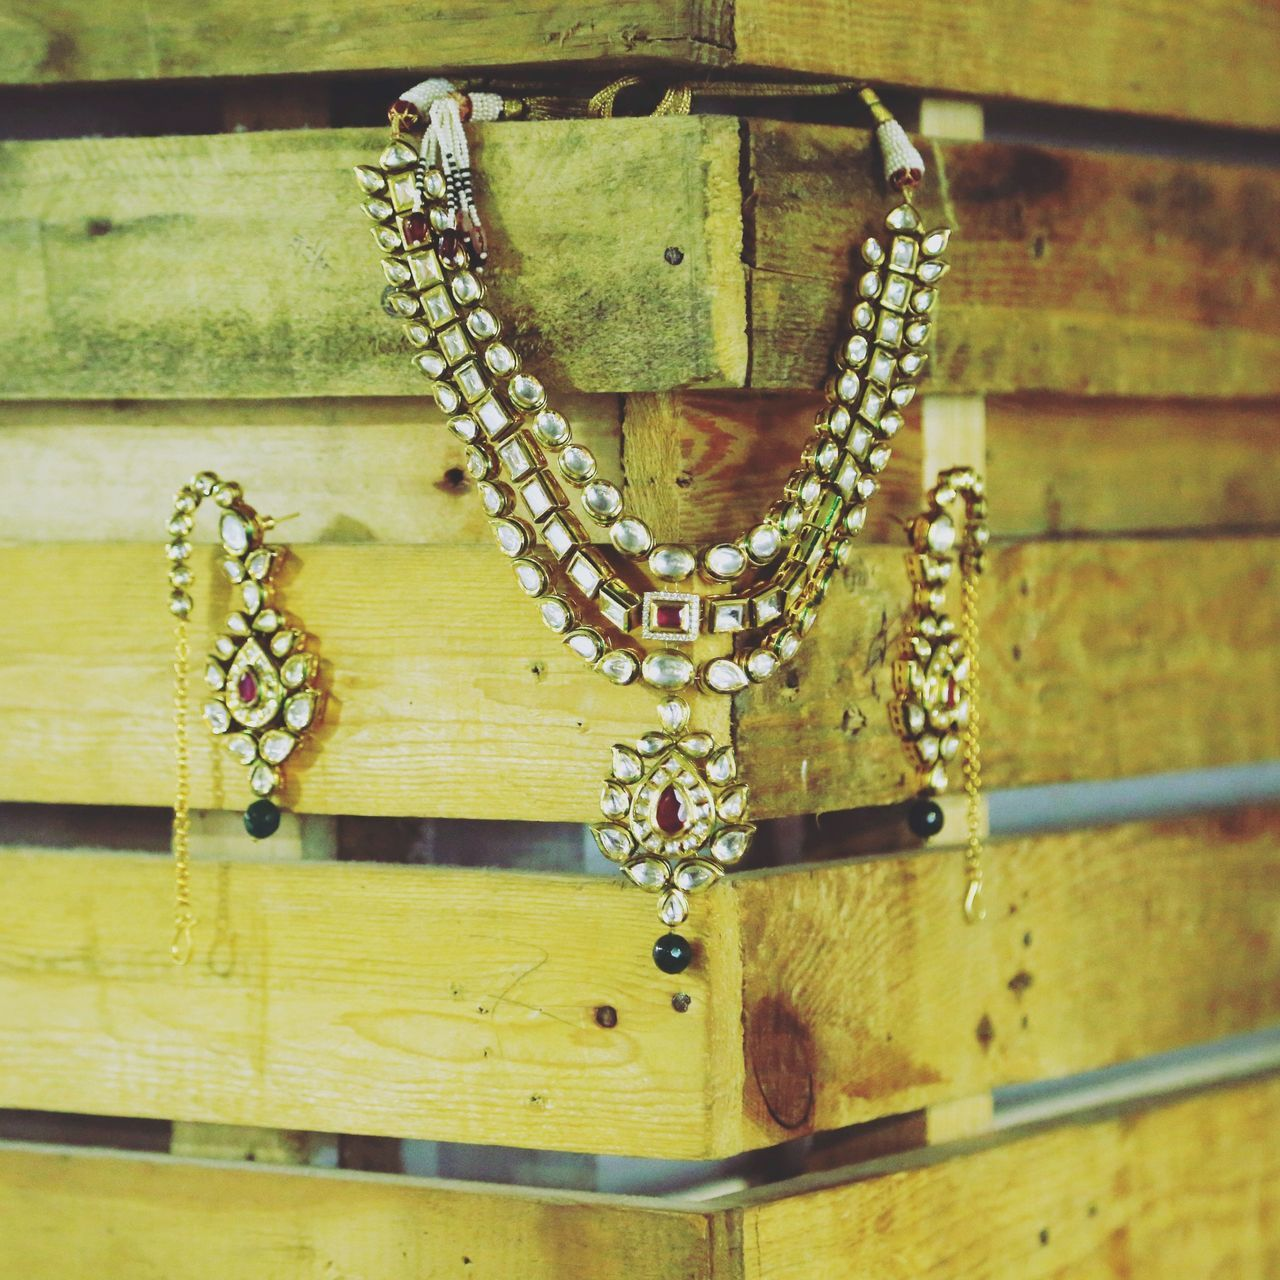 chain, necklace, no people, close-up, hanging, day, outdoors